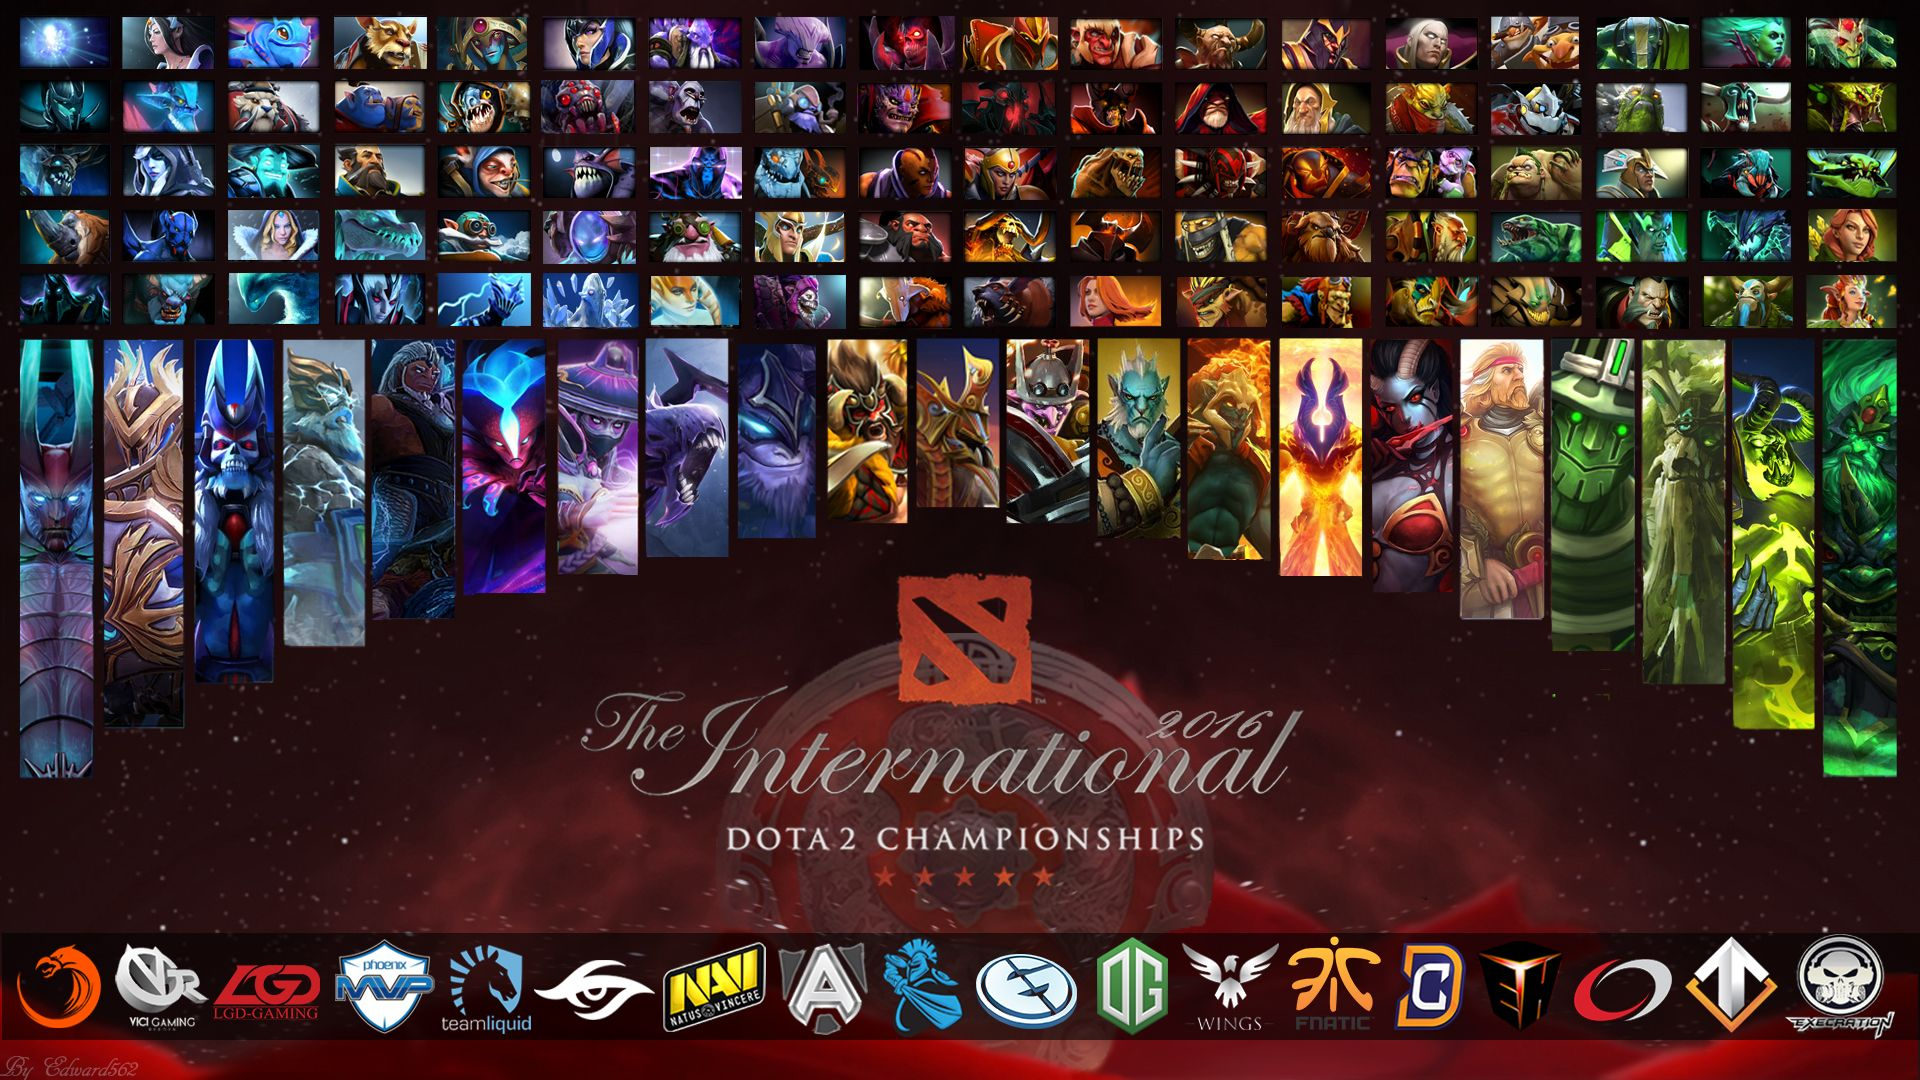 The International 6 All Heroesteams Wallpaper By Edward5622